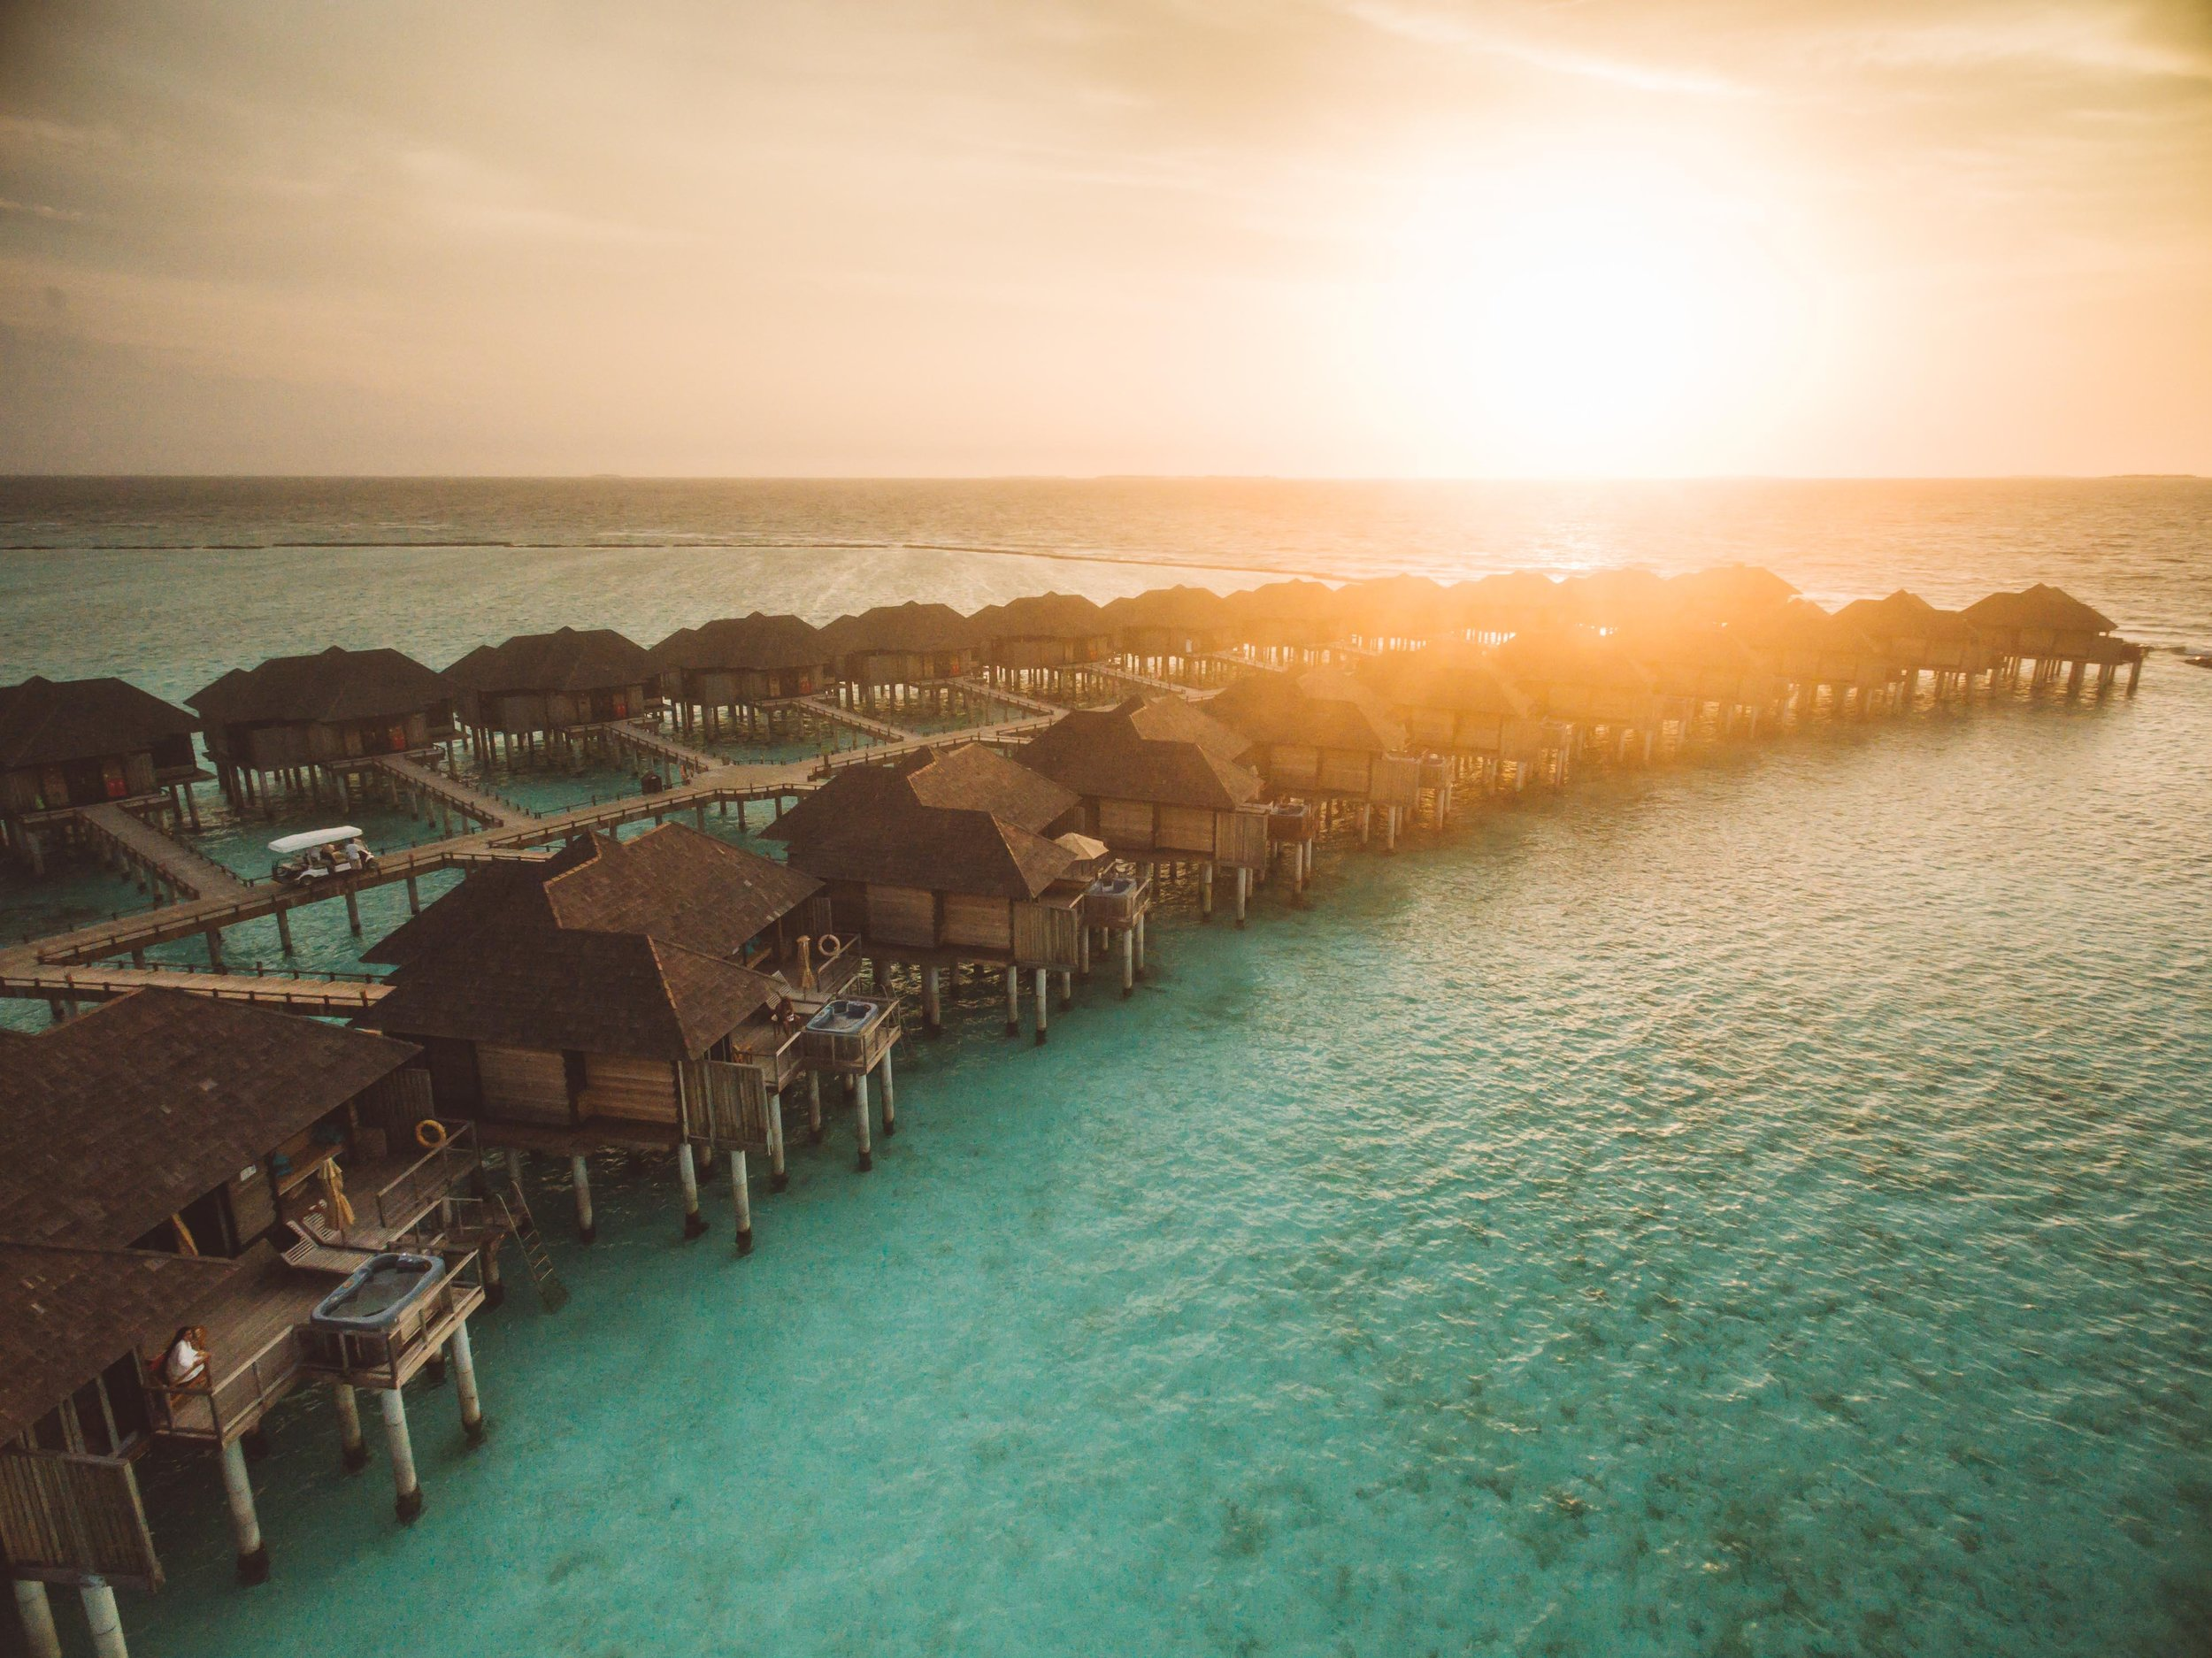 We found Paradise. The Maldives is certainly all that it is built up to be.....and maybe more. Taking in this beautiful sunset at the Sun Siyam Hotel and Resort, where we wrapped up this amazing year of travel with 5 days of fun in the sun!